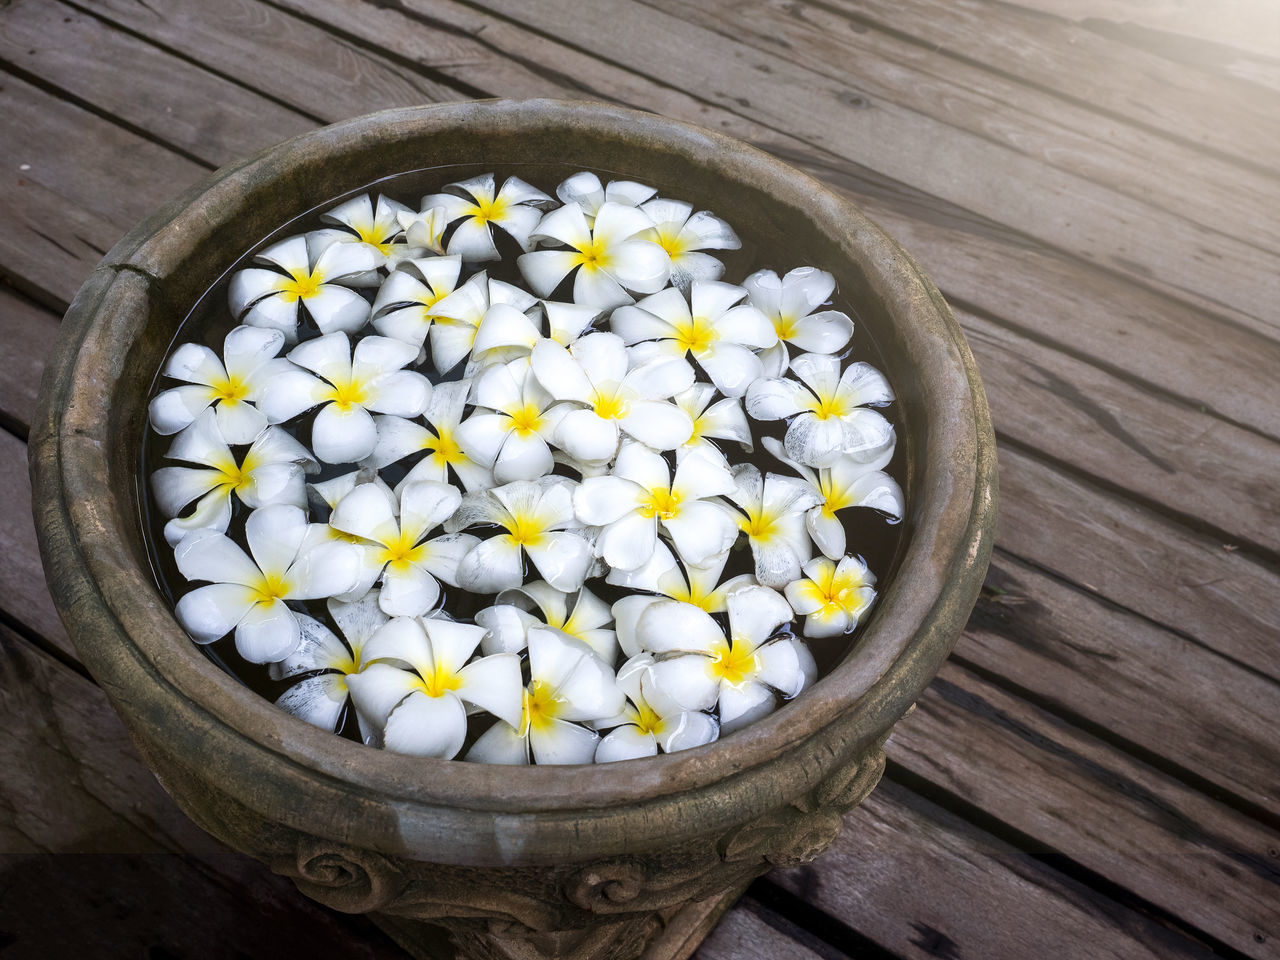 Close up view of spa theme and Frangipani plumeria Spa Flower in retro jar. Aroma Beautiful Close-up Concept Decoration Flower Freshness Freshness Healthy Interior Lifestyles Massage Medicine Natural Nature Relaxing Thai Therapy Topical Treatment Wellness White Color Women Wood Worms